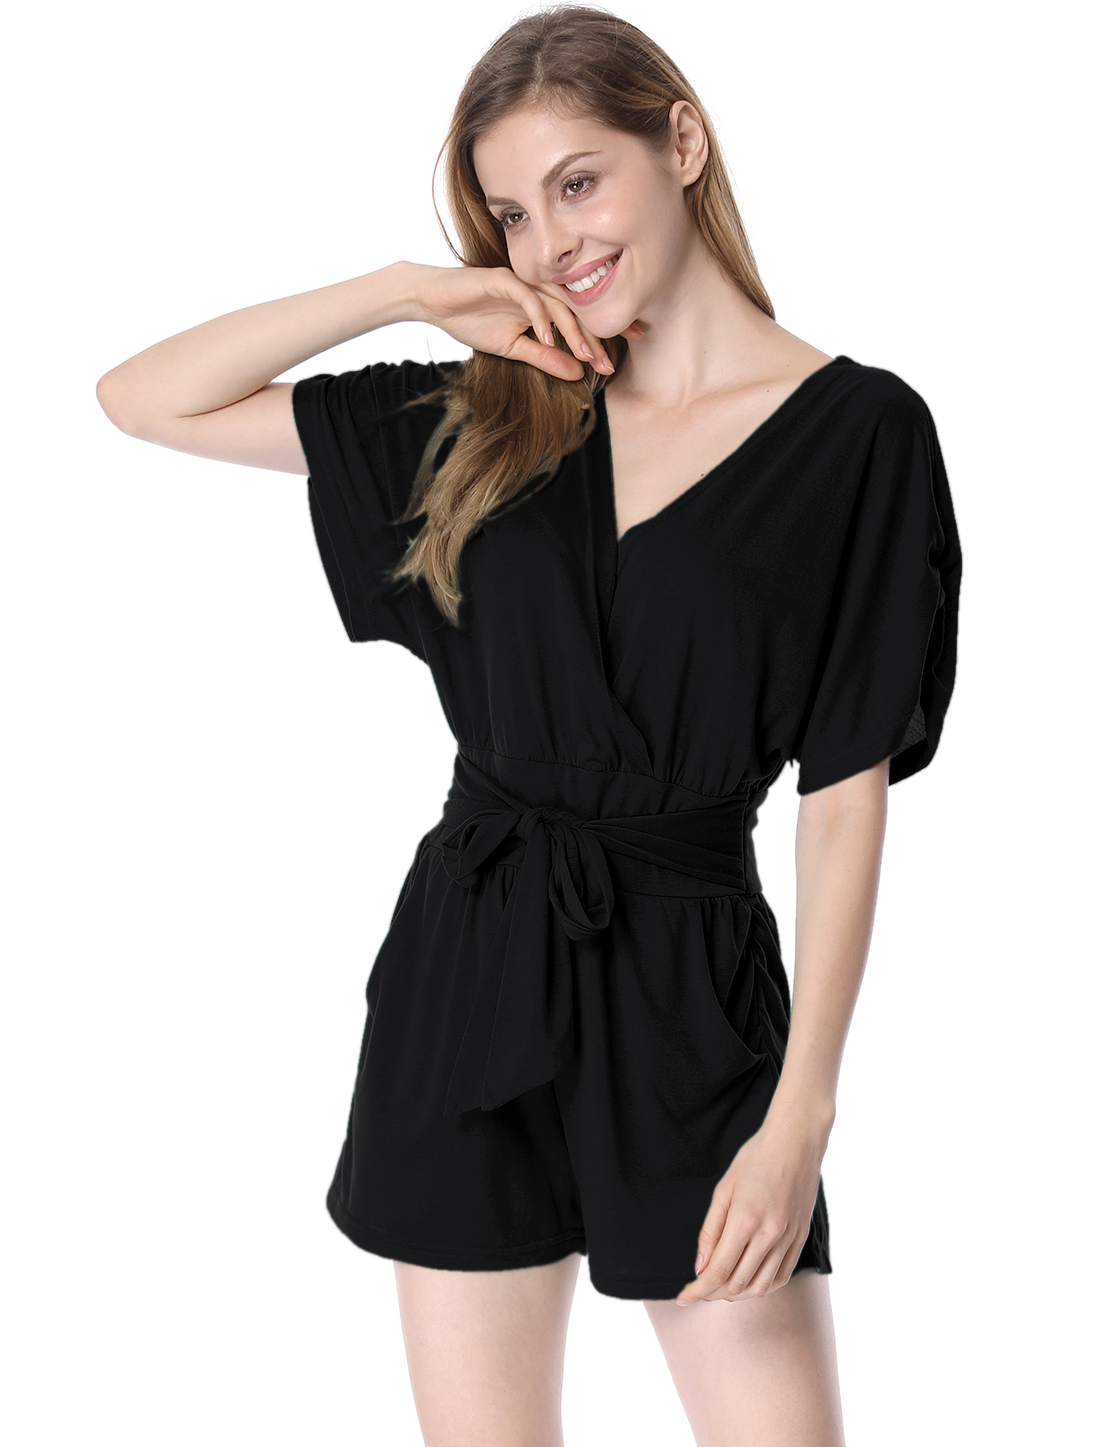 Women NEW Crossover V-Neck Self-Tie Waist Strap Design Black Romper M